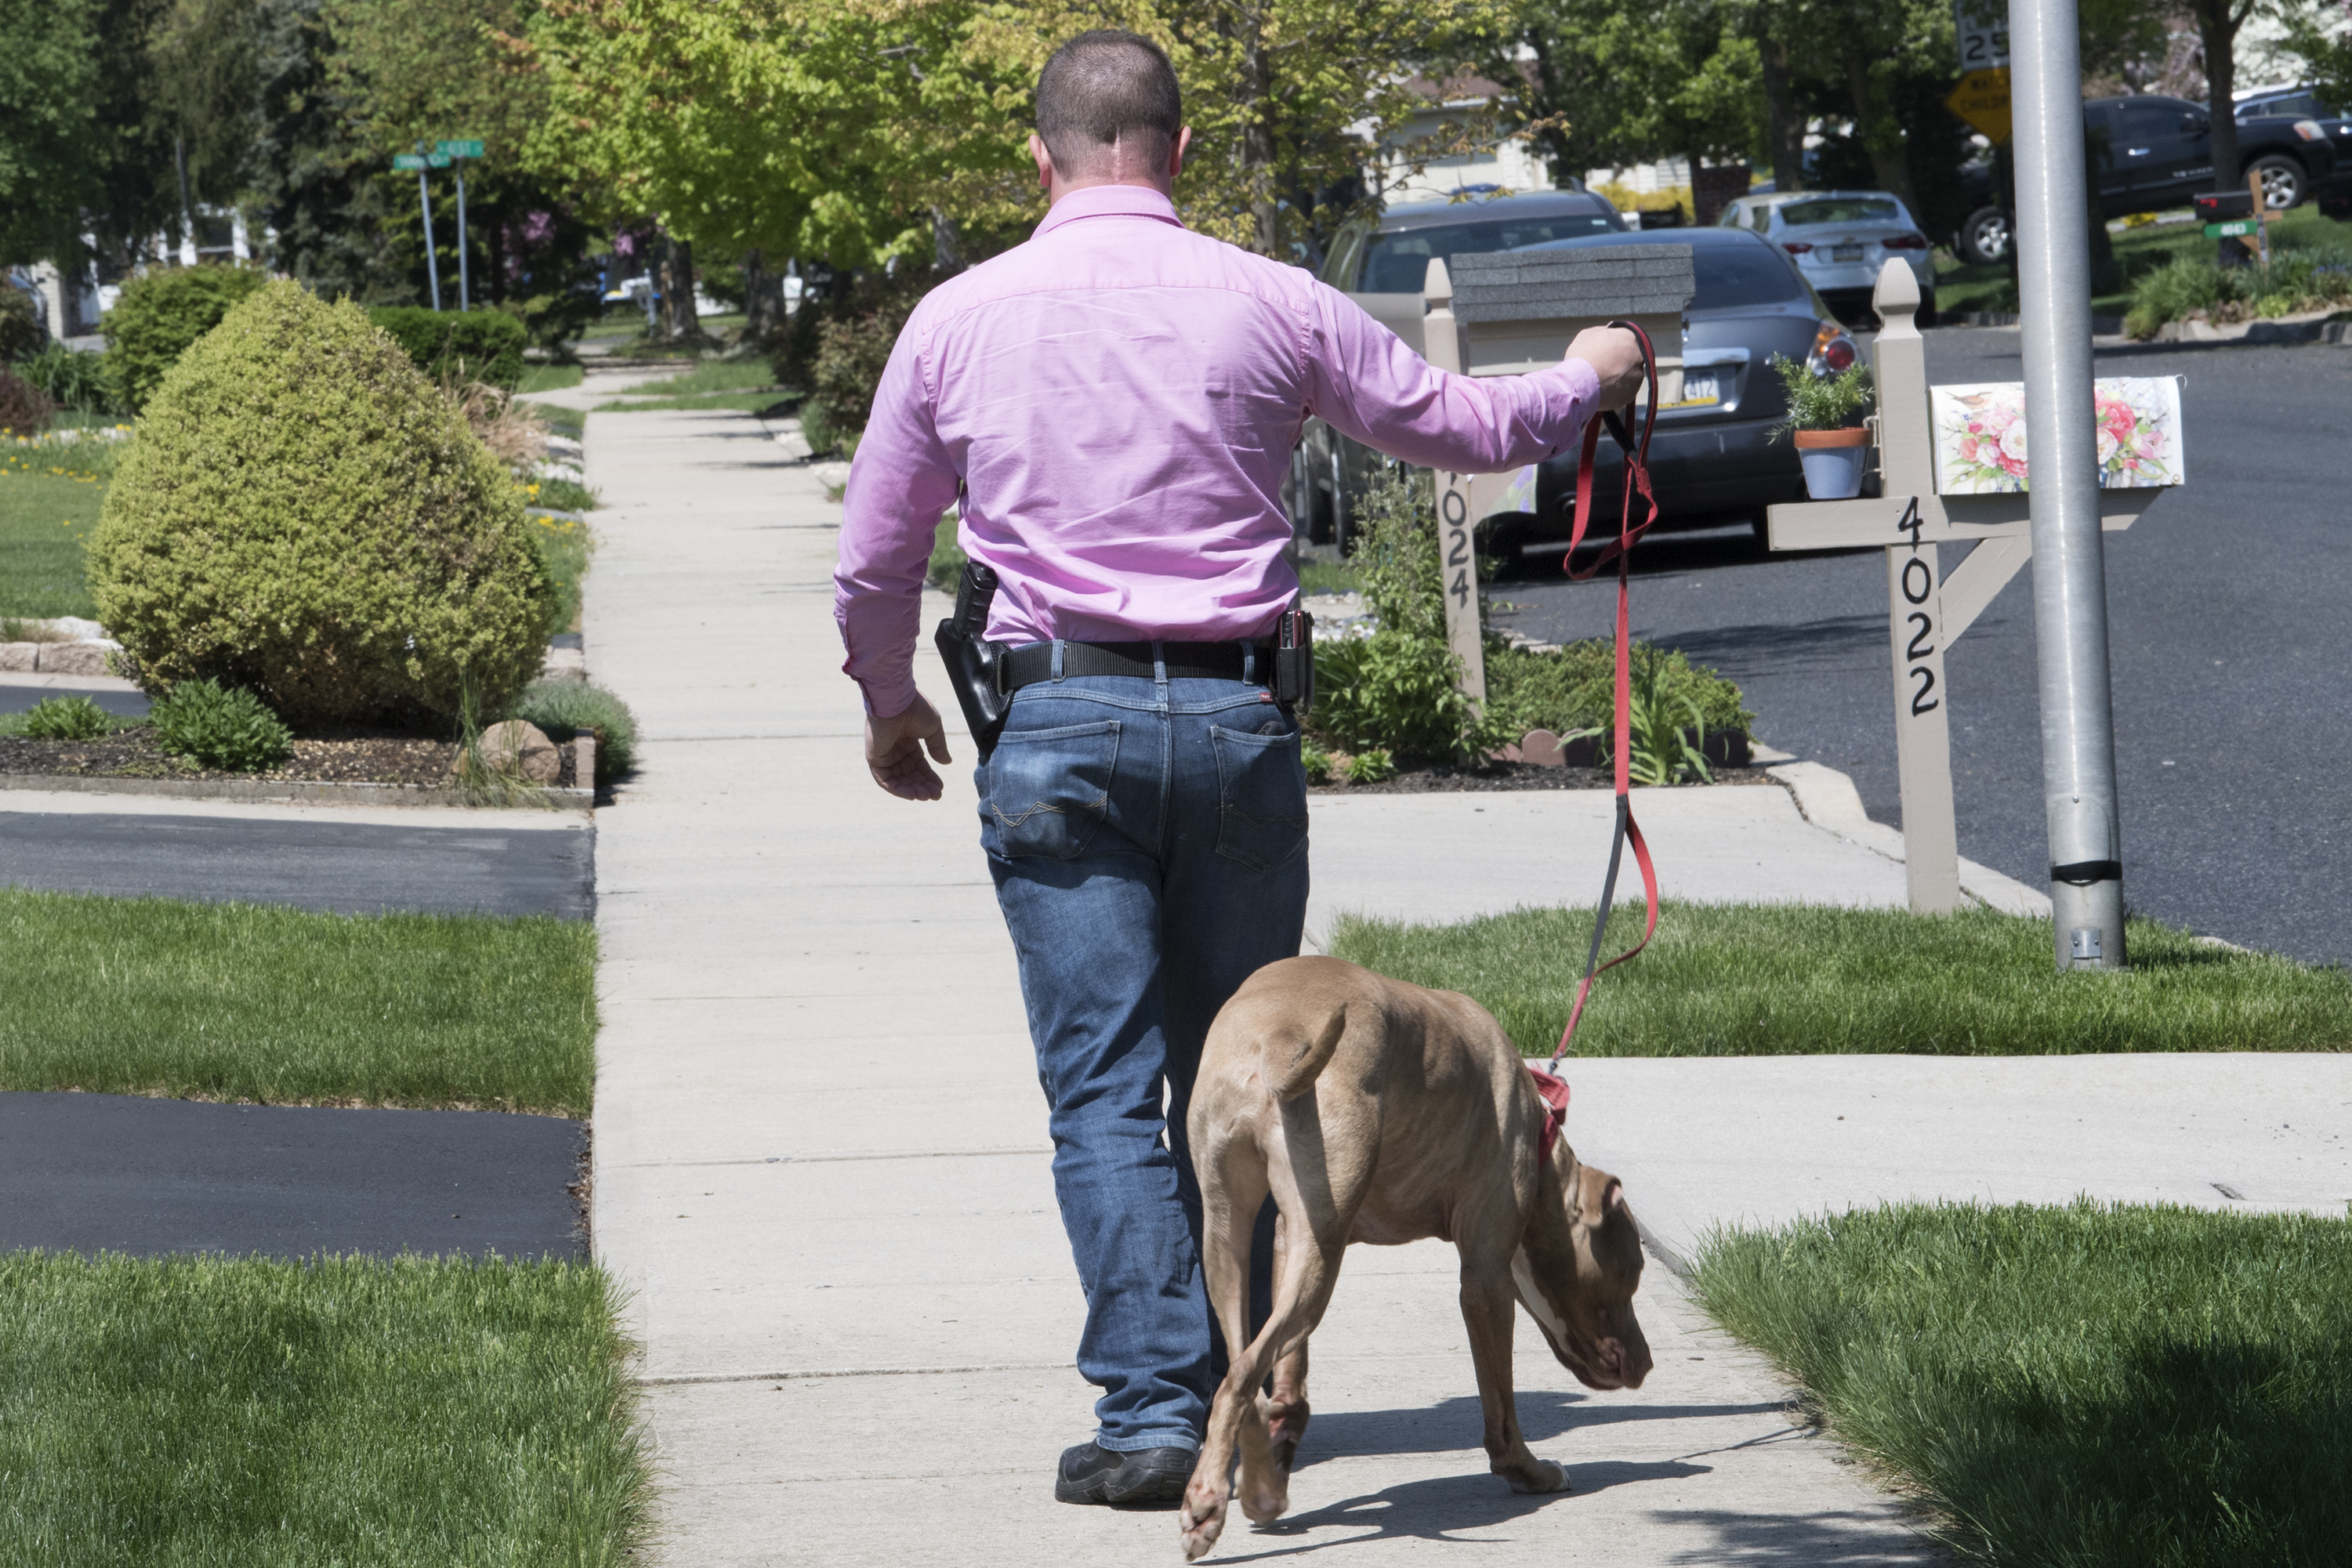 """Mark Fiorino is photographed with an open-carry handgun during a walk with his dog """" Barrett """" in Allentown, Pa. Wednesday, May 9, 2018."""